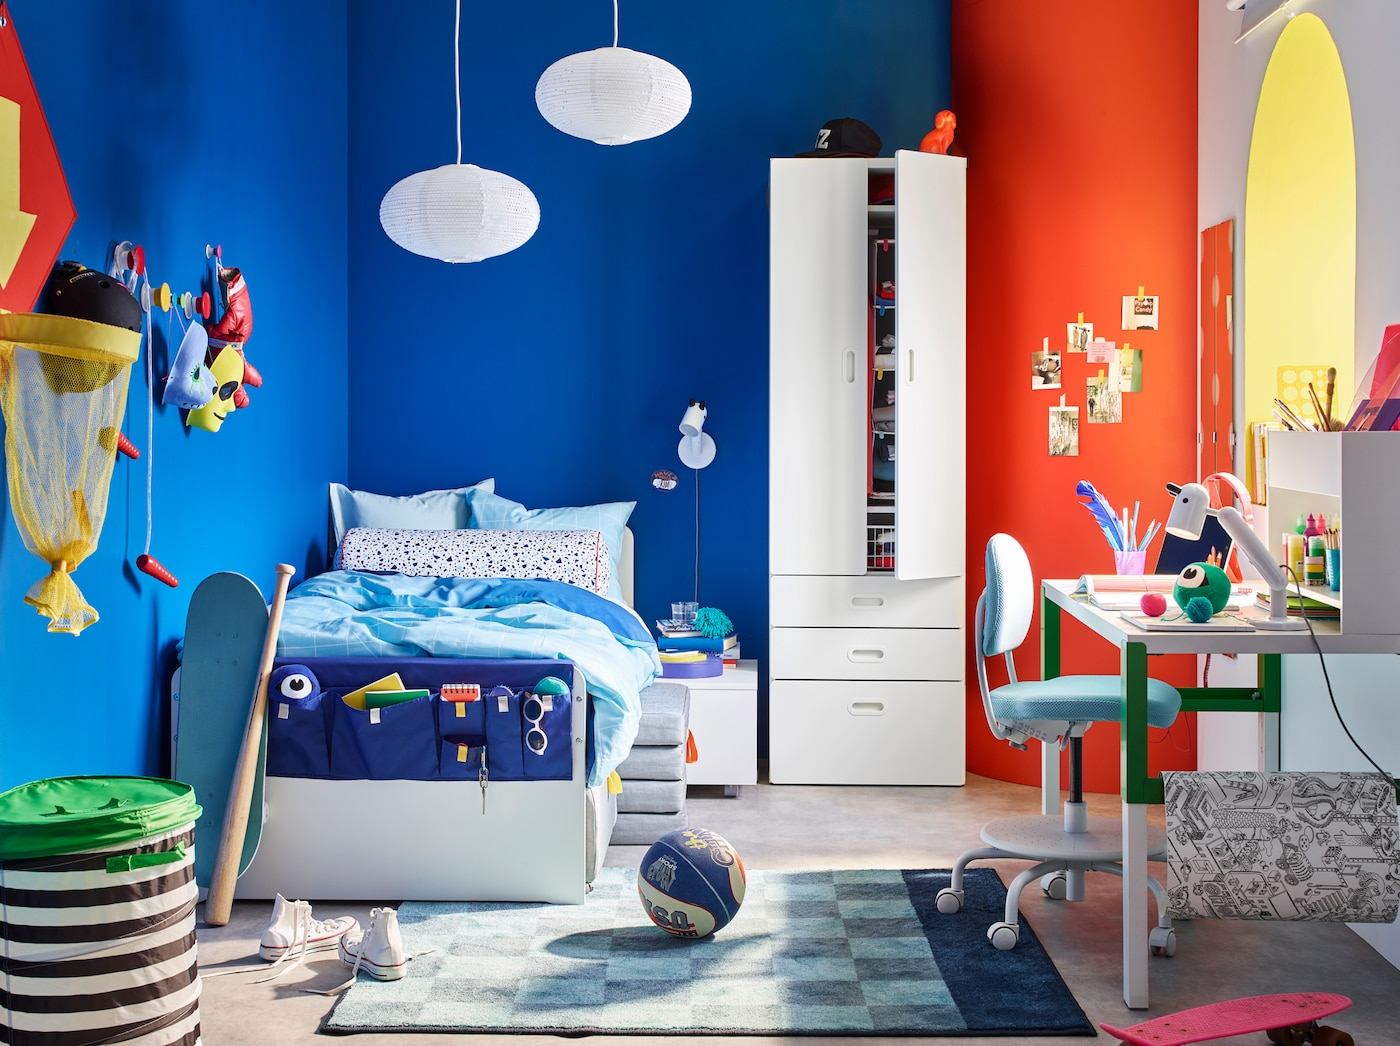 IKEA STUVA white wardrobe and SLÄKT white bed in a brightly coloured children's bedroom.